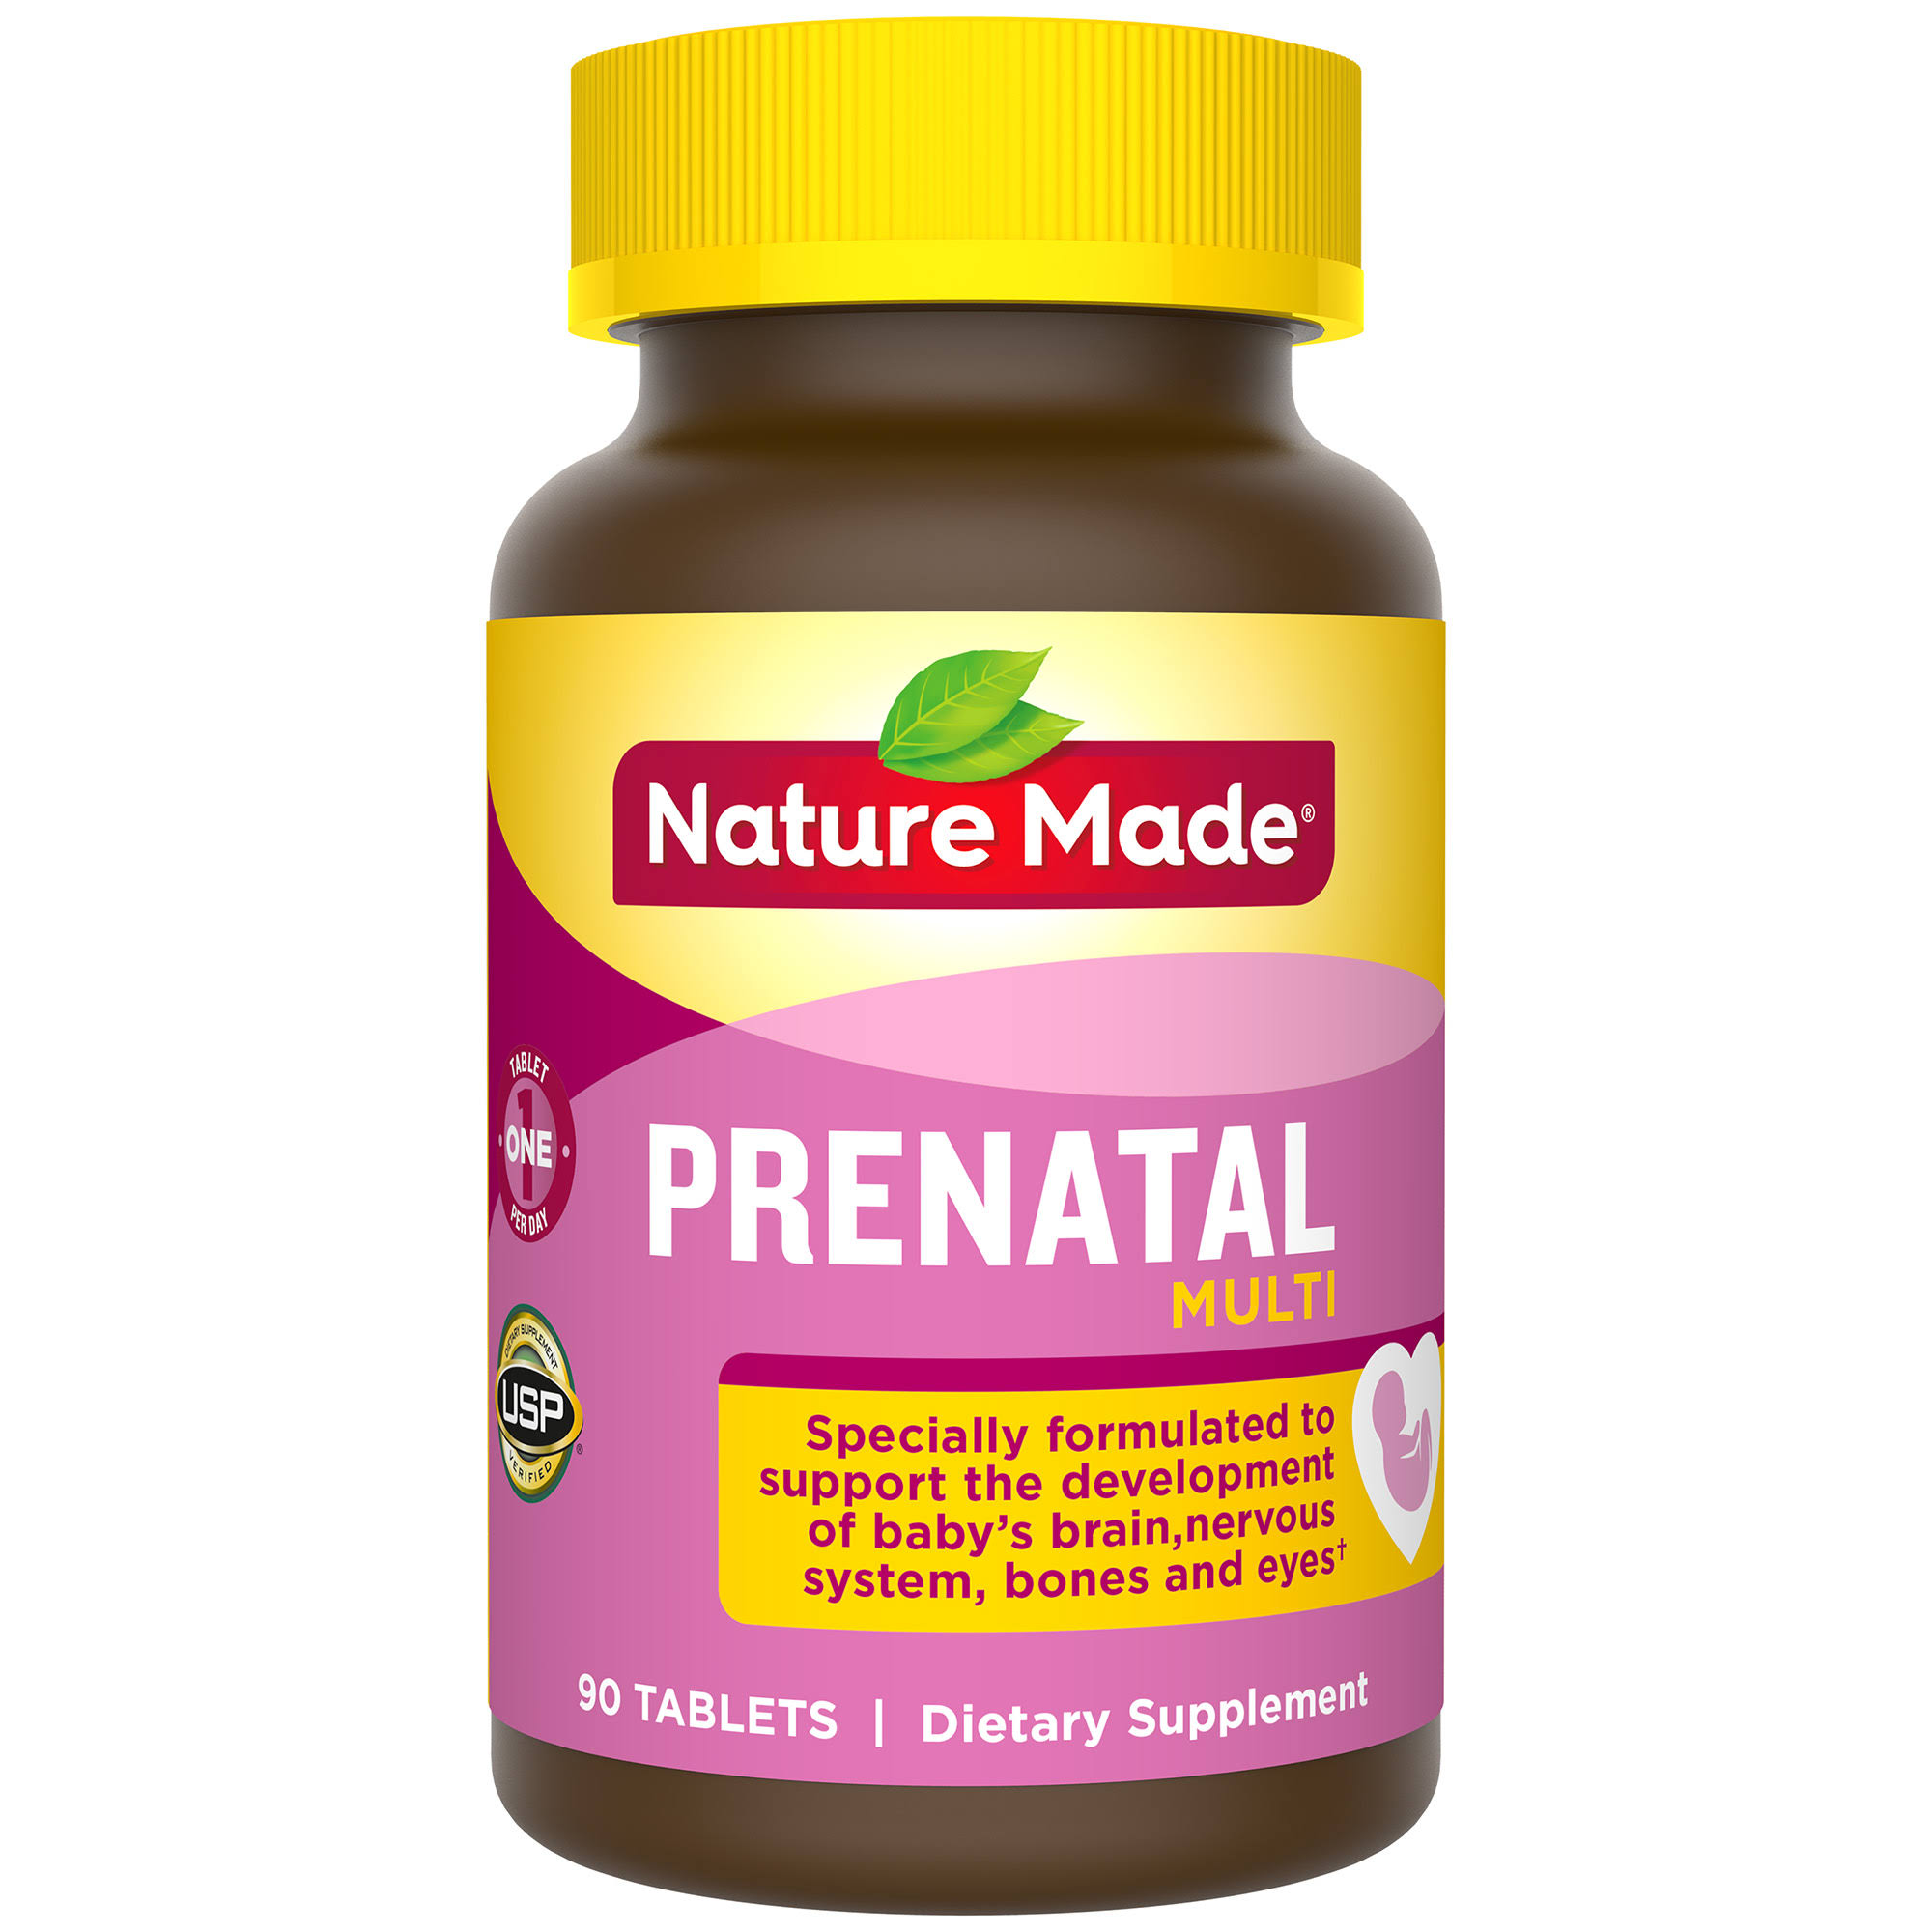 Nature Made Multi Prenatal Dietary Supplement - 90 Tablets